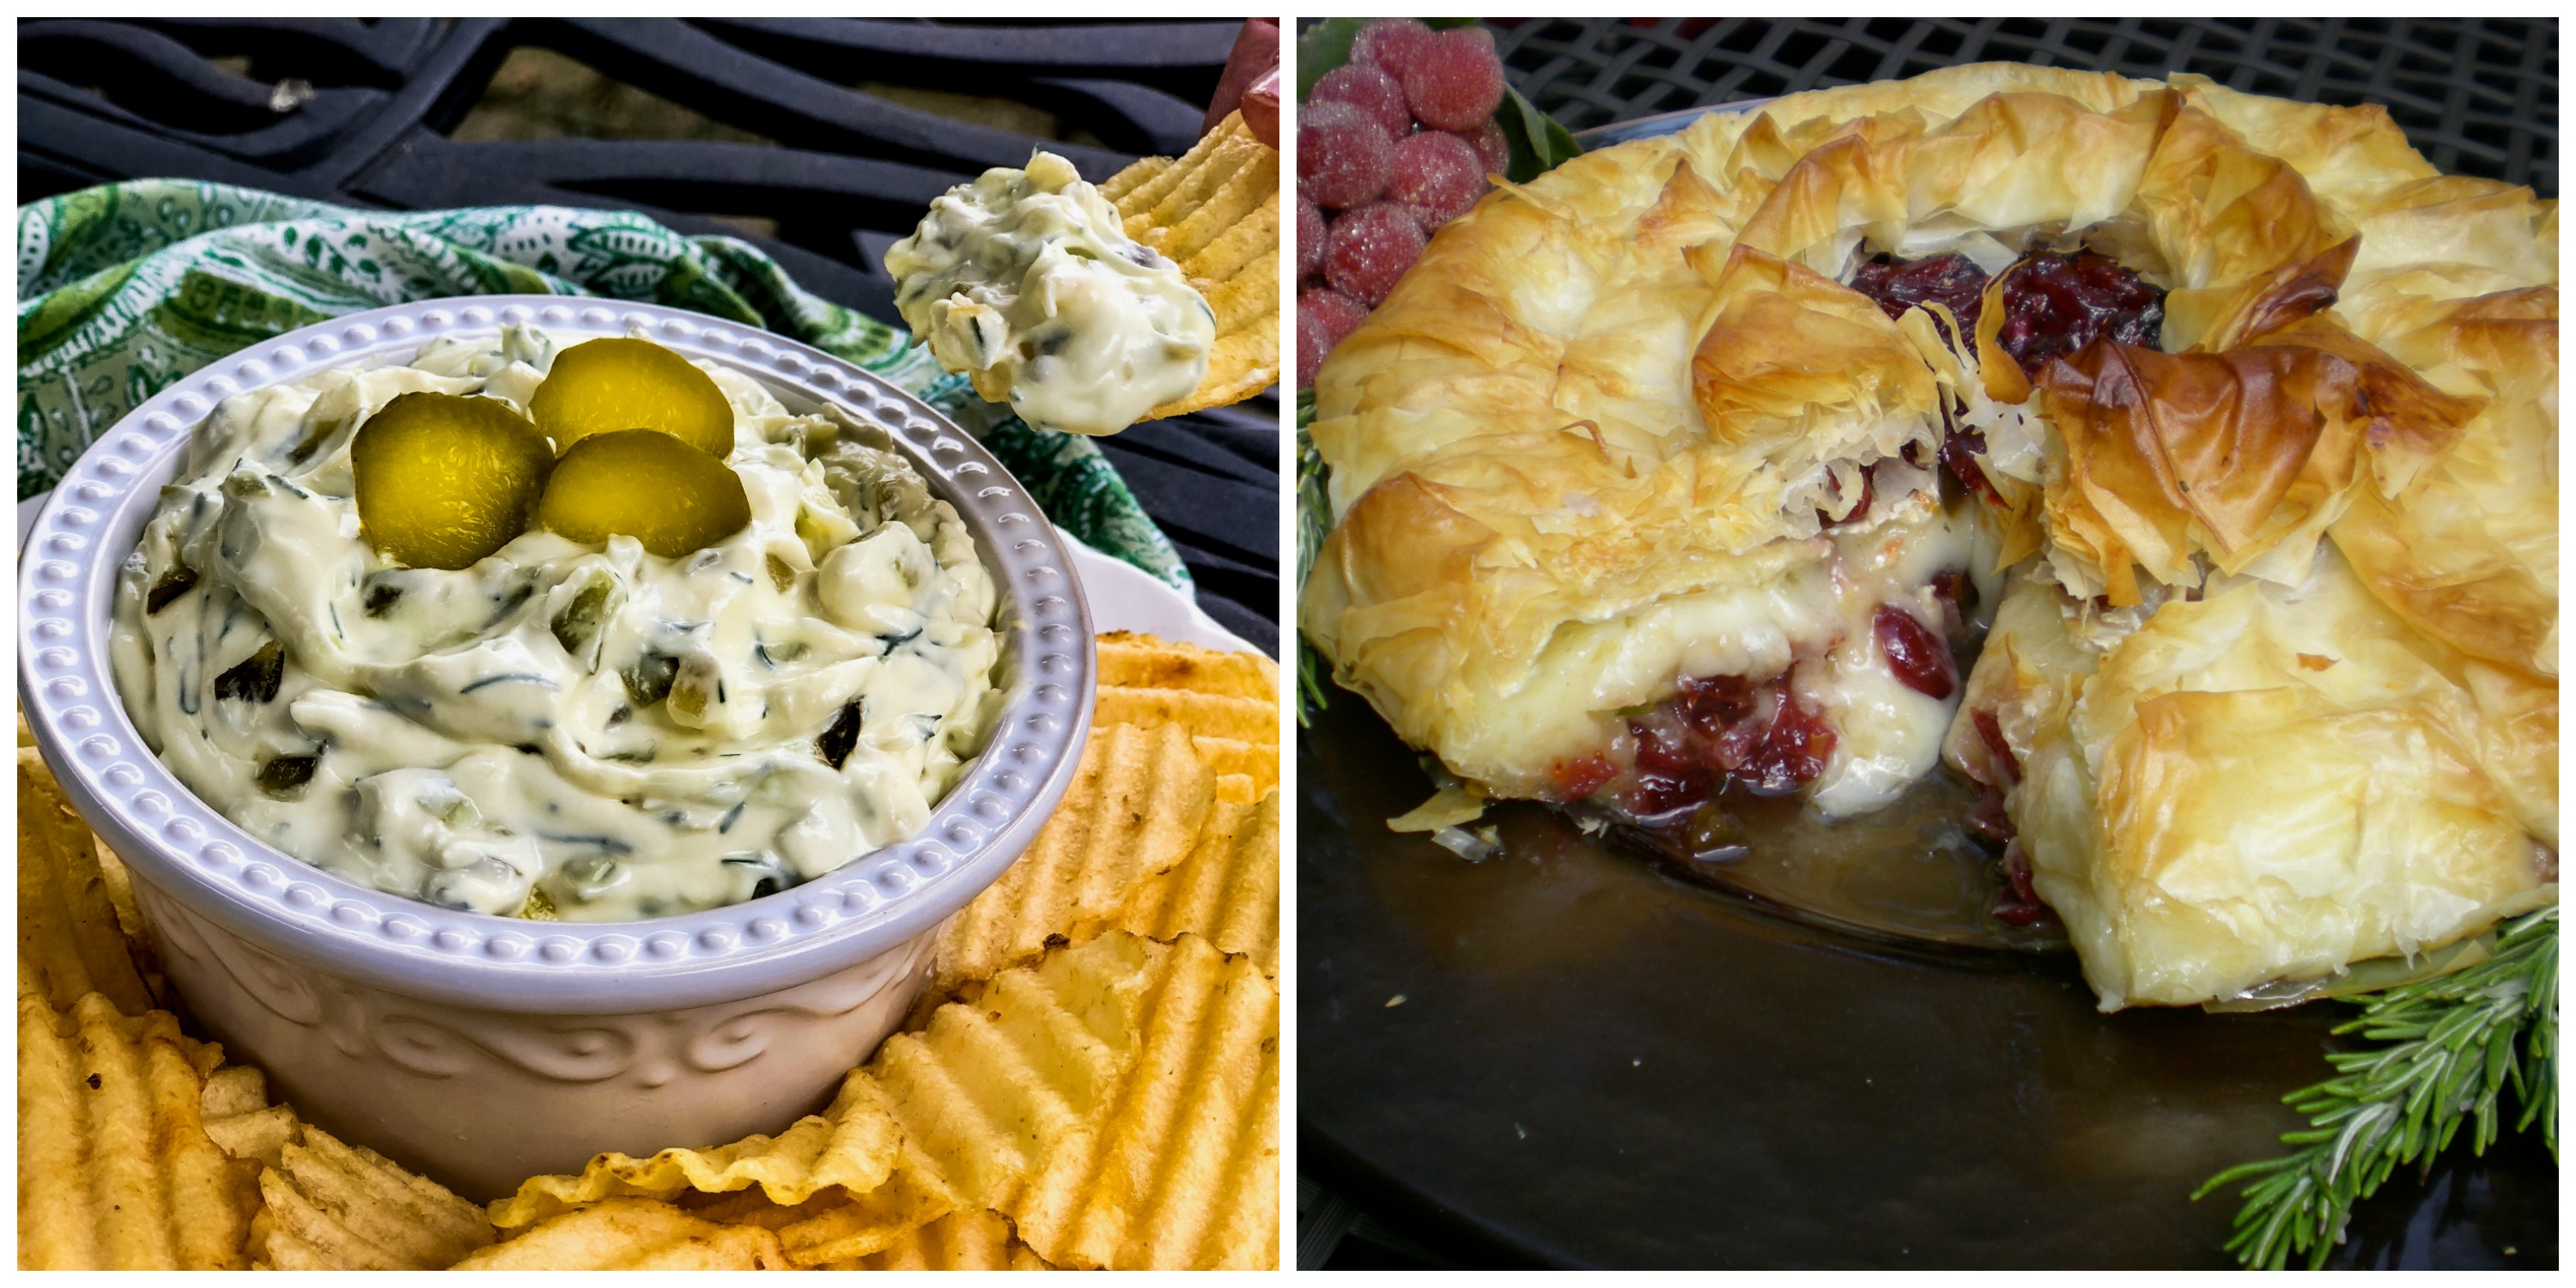 Dill Pickle Dip and Baked Brie